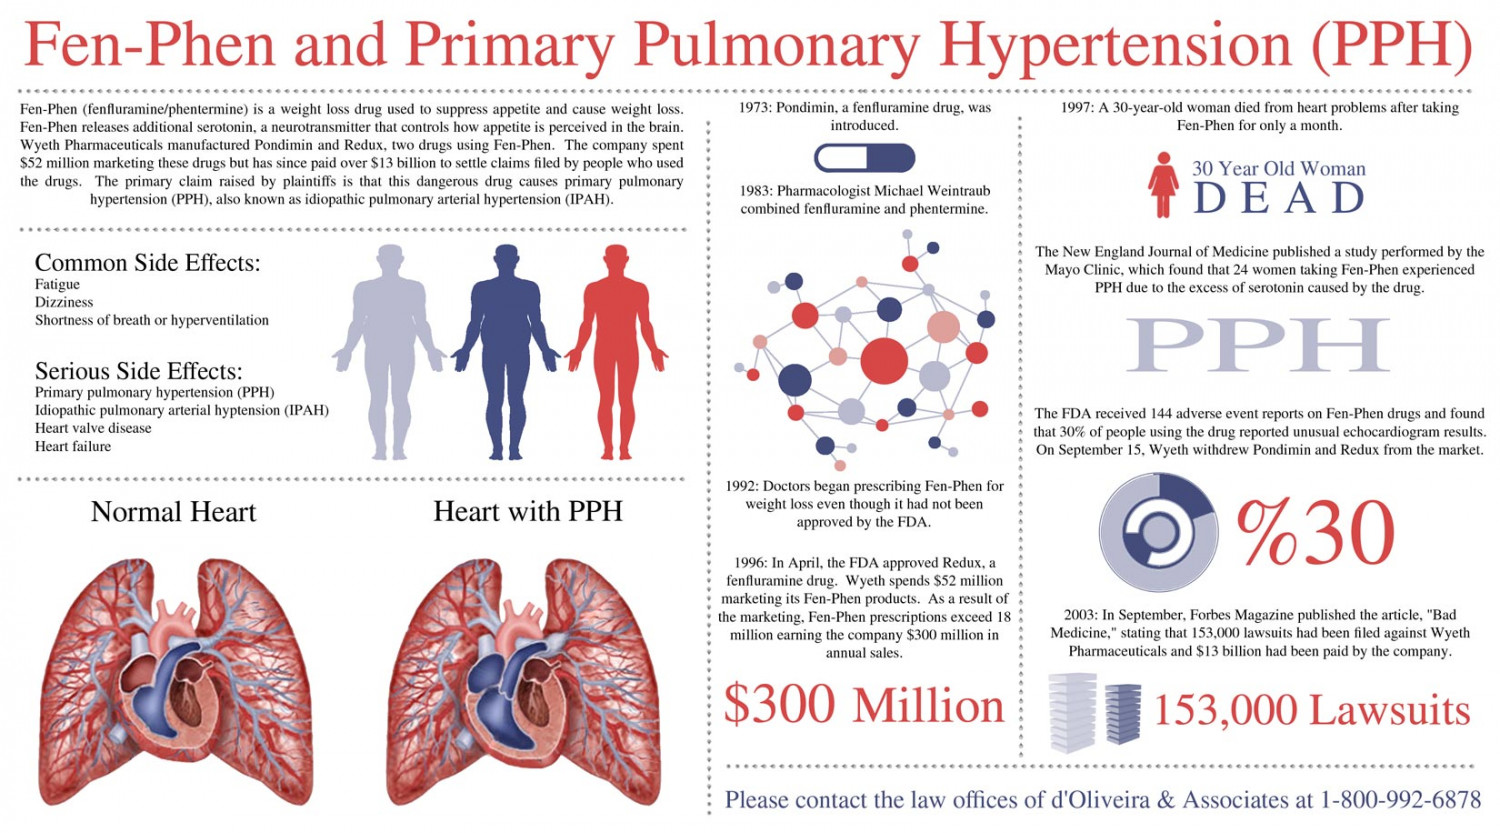 Fen-Phen and Primary Pulmonary Hypertension (PPH) Infographic